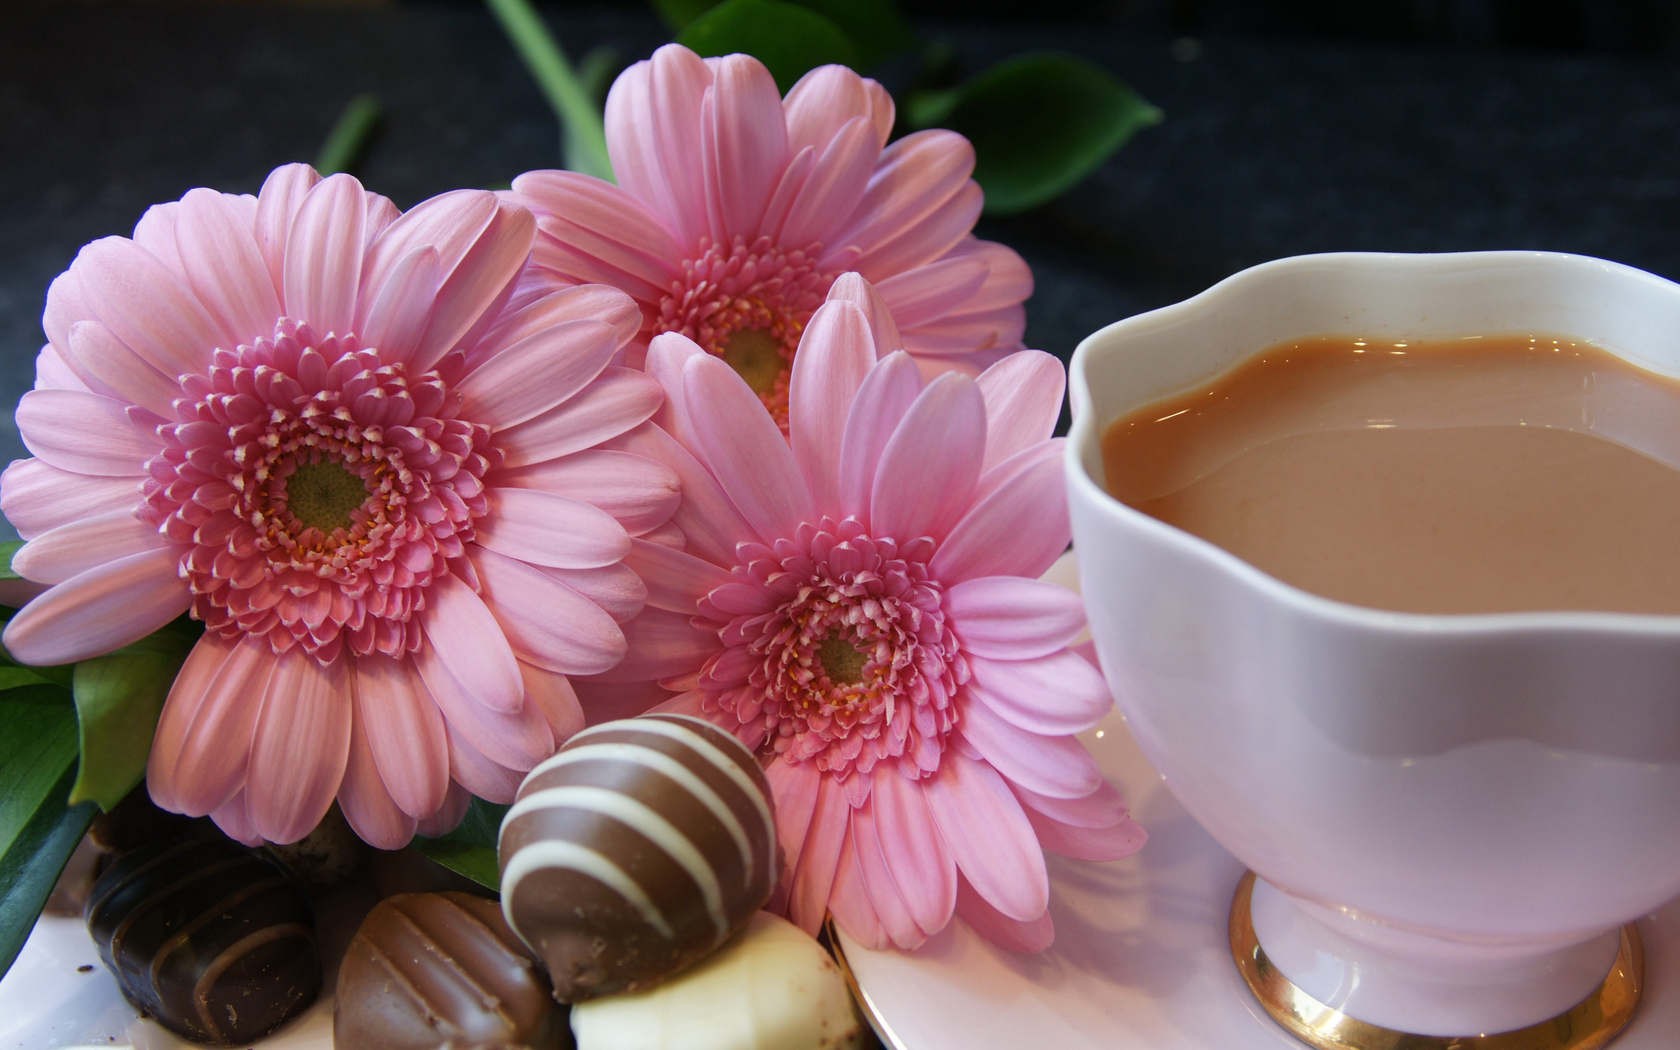 tea, milk, candy, flowers